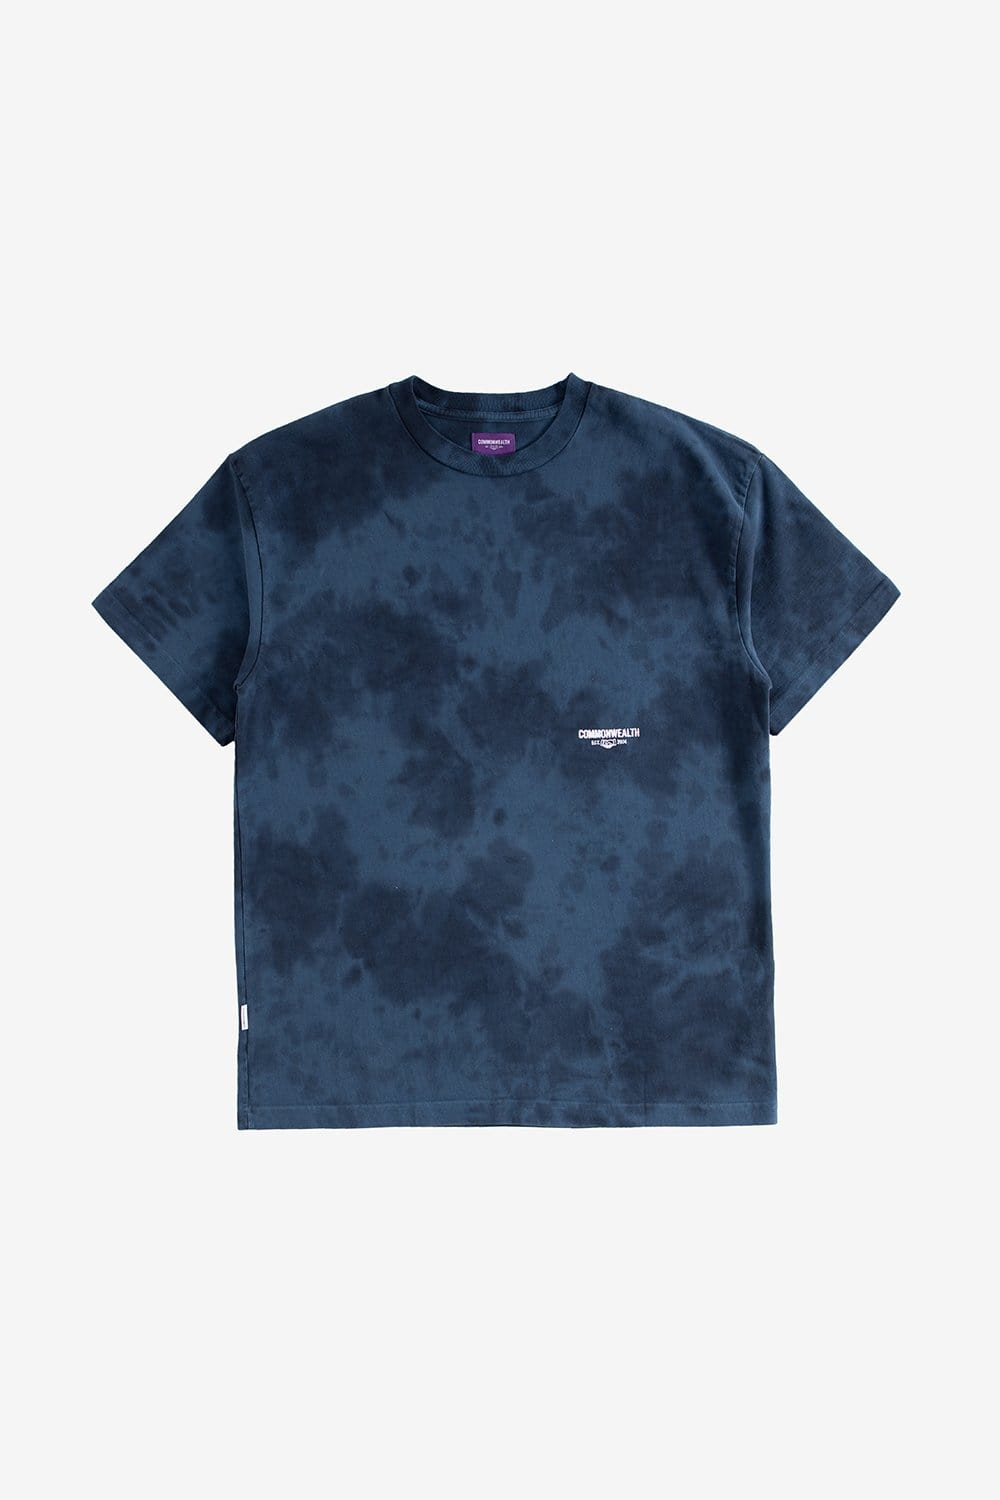 Commonwealth Apparel Micro Classic Tie Dye Tee